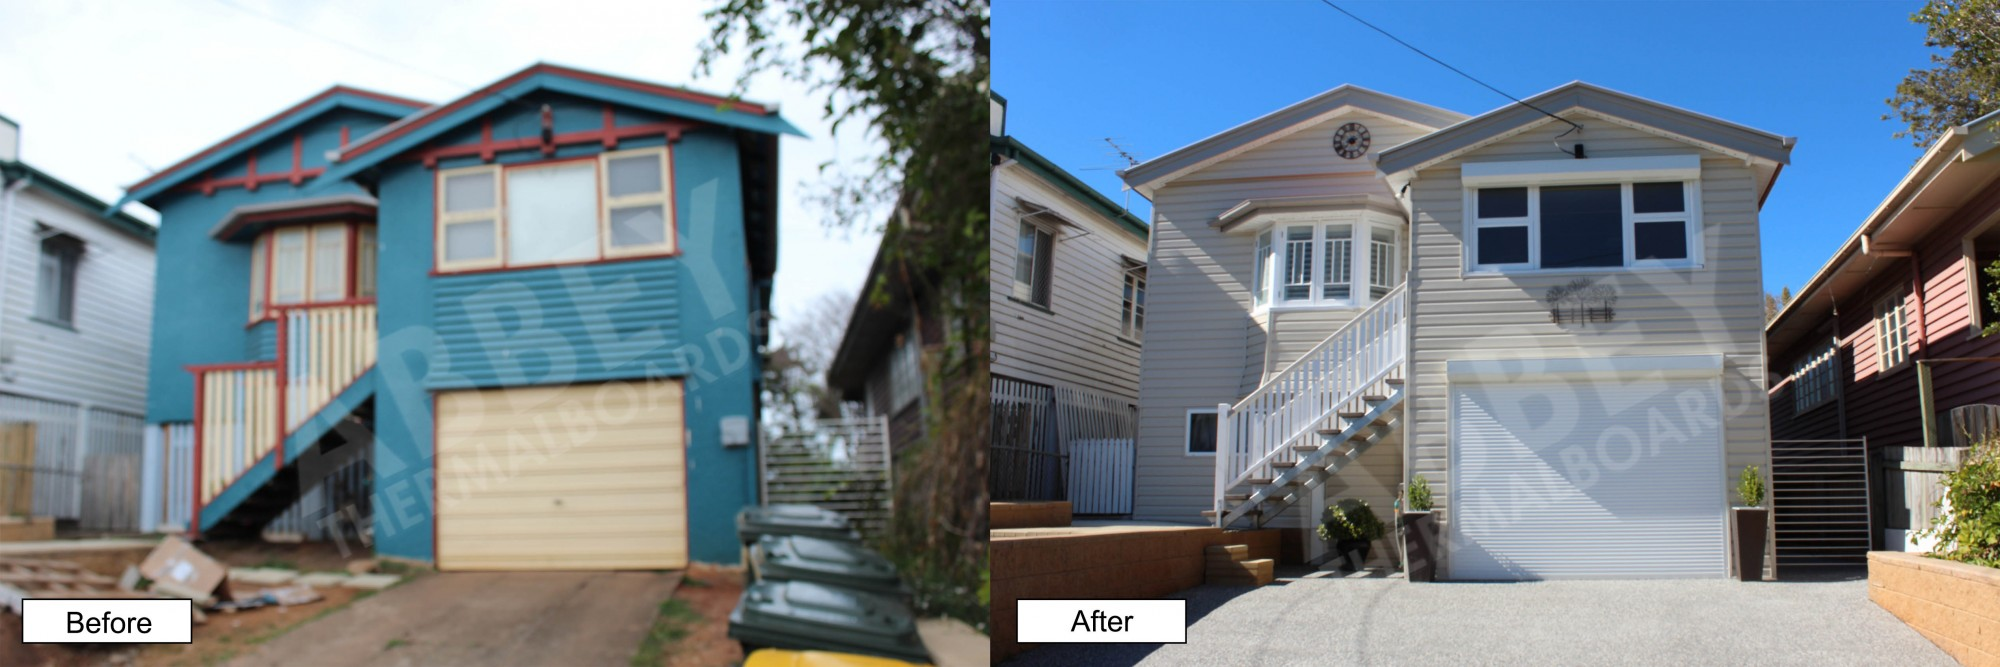 Cladding completed in this before and after shot of a previous blue 2 storey home.